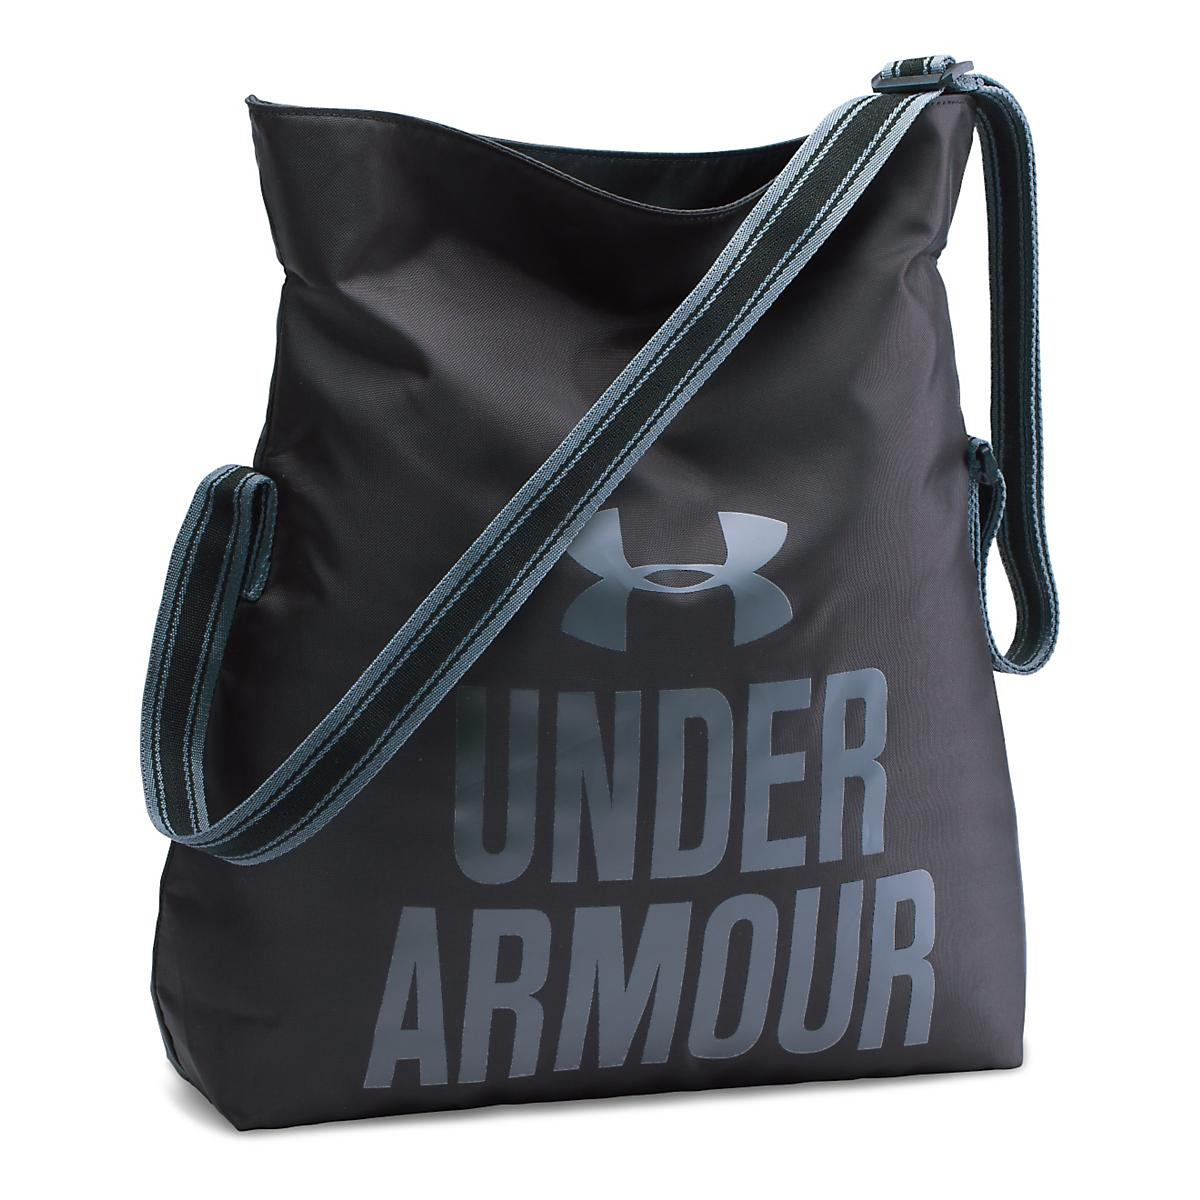 Womens Under Armour Crossbody Bags At